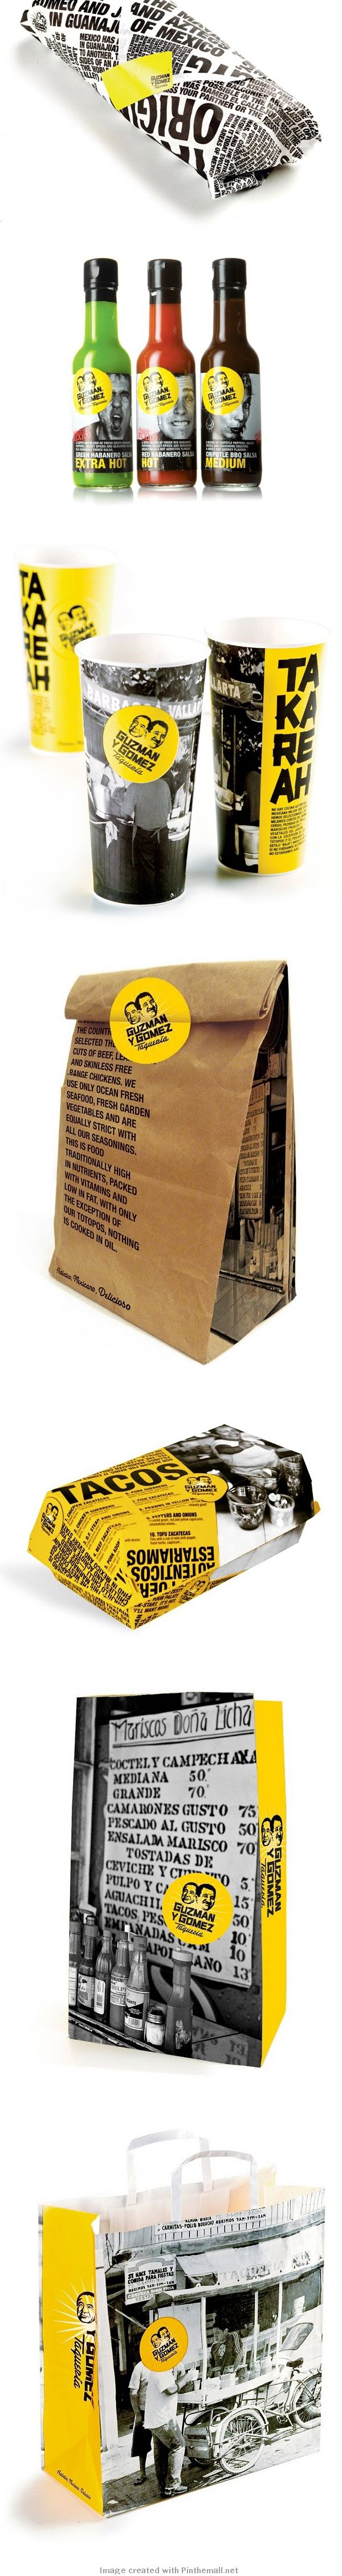 The Creative Method Great Package Design for Guzman Y Gomez by The Creative Method